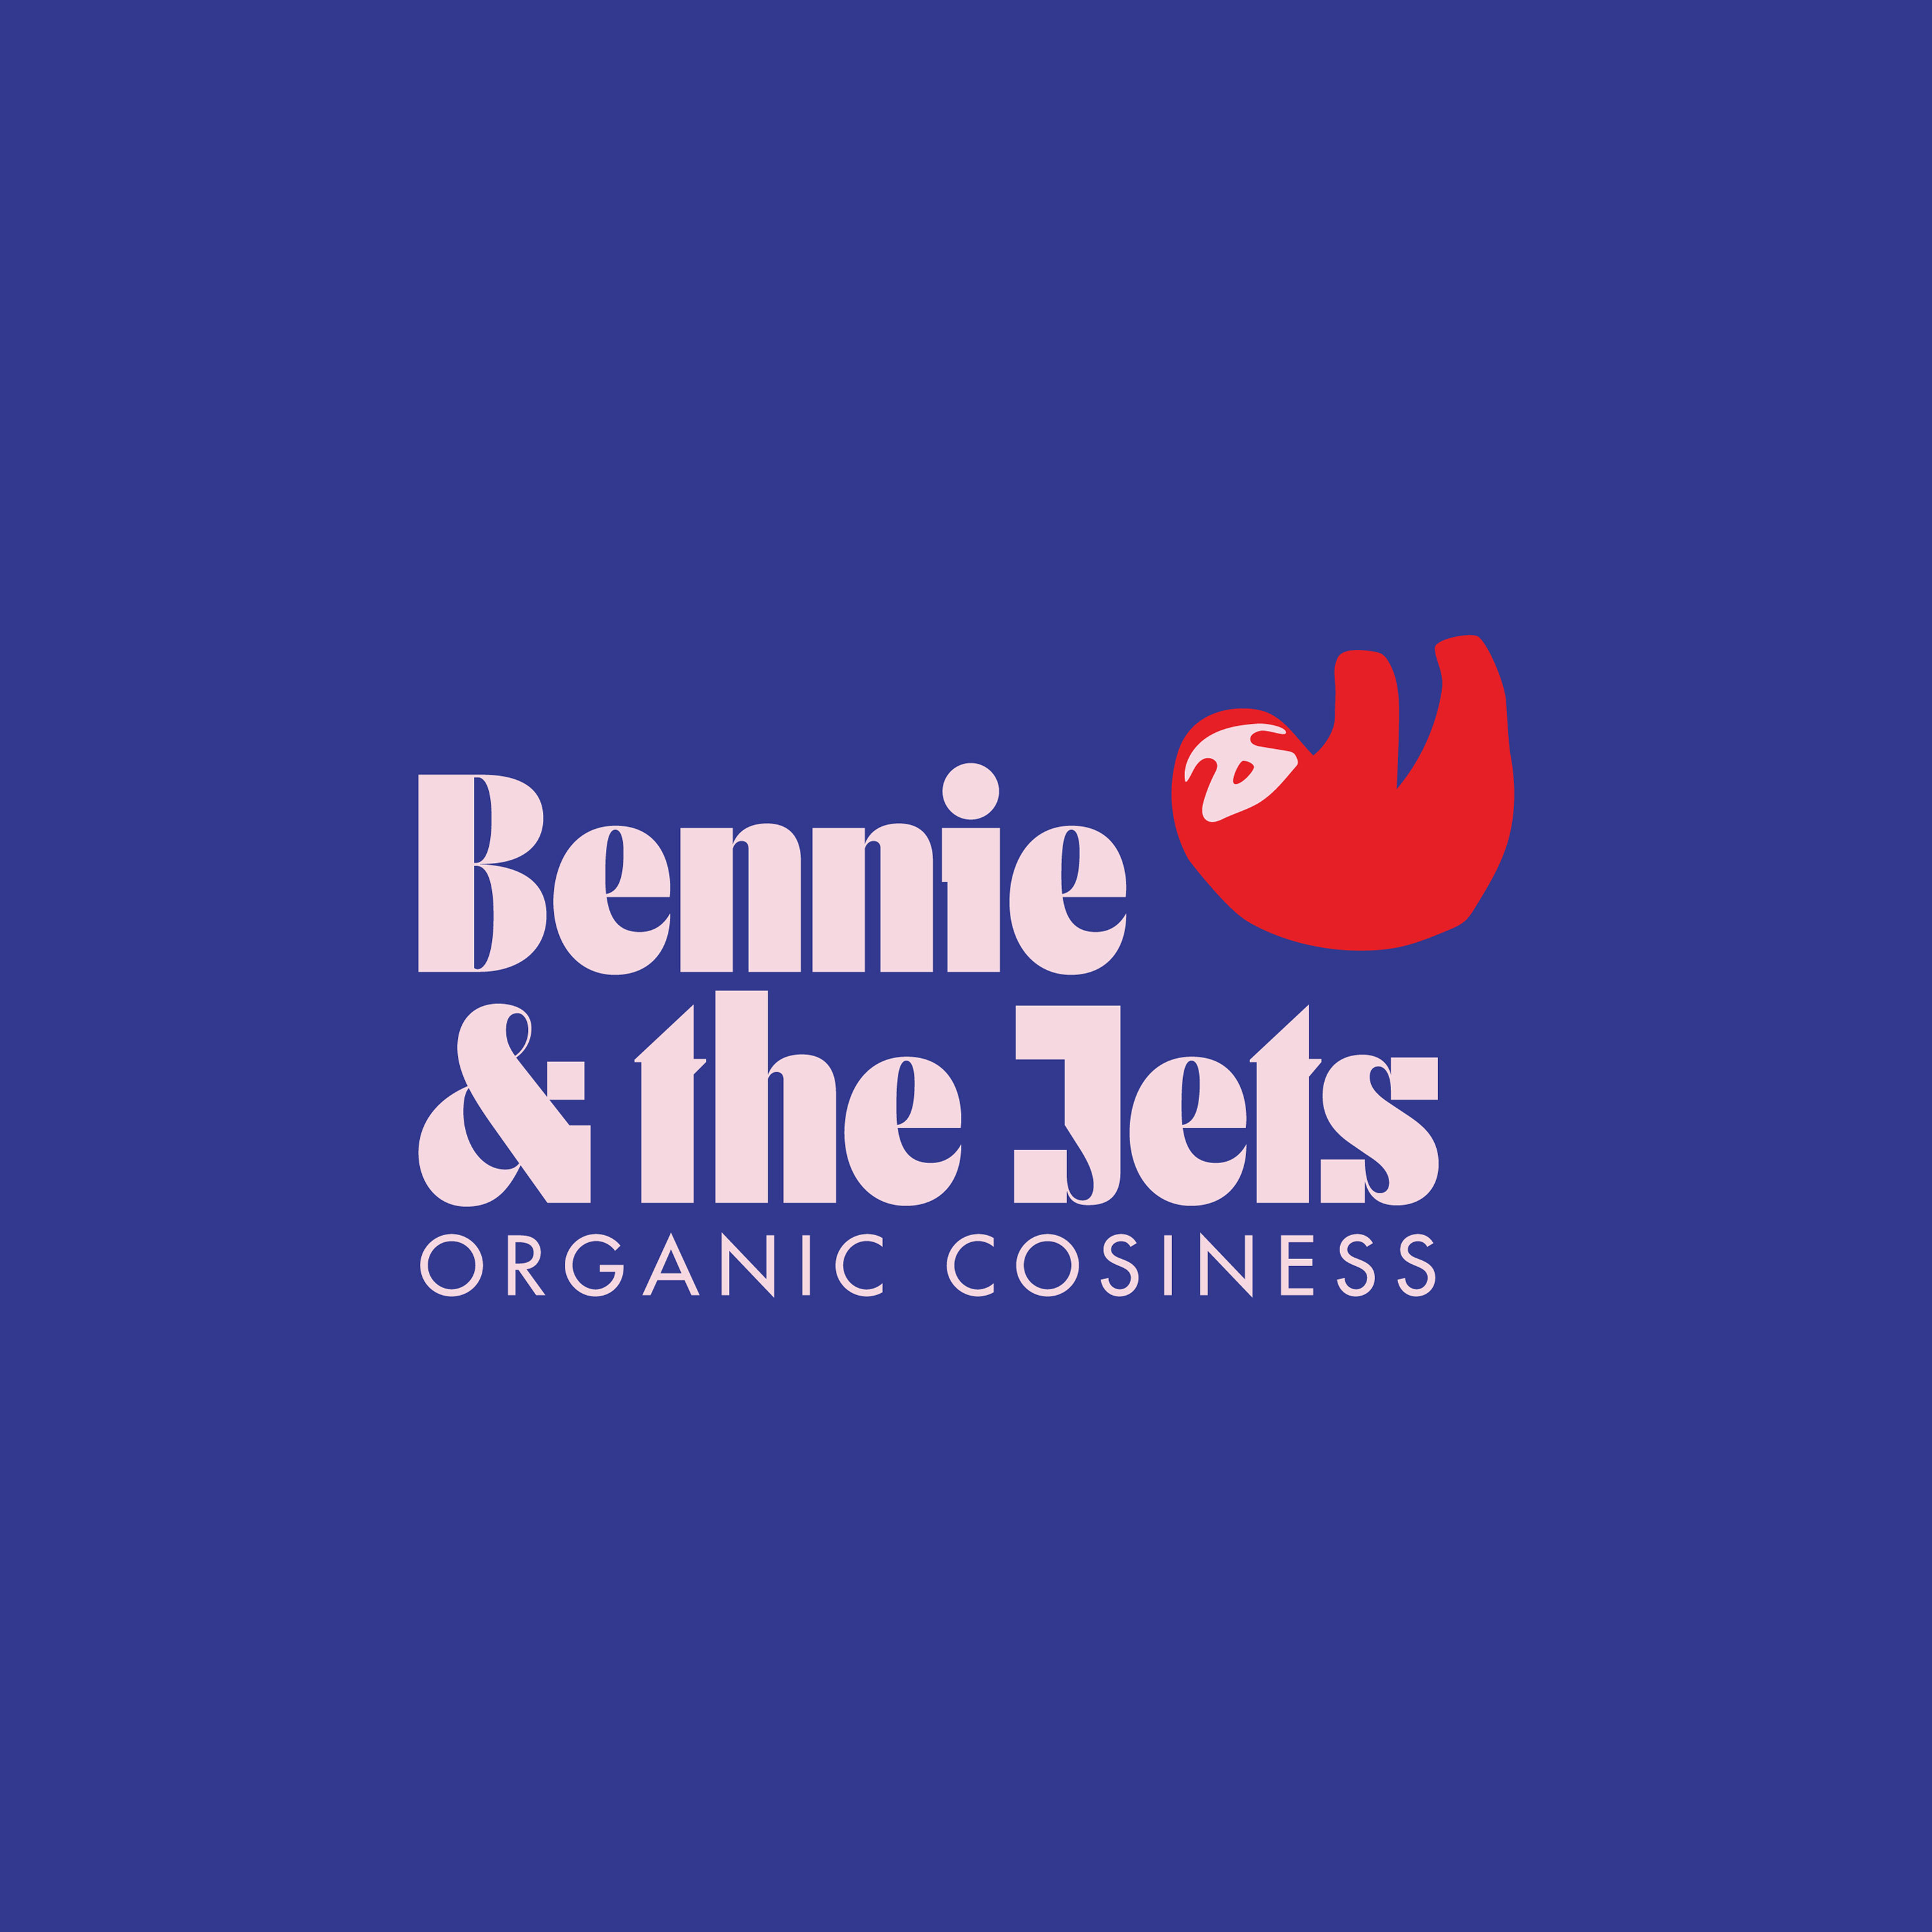 SOCIALMEDIA2_Bennie_and_the_jets_logo